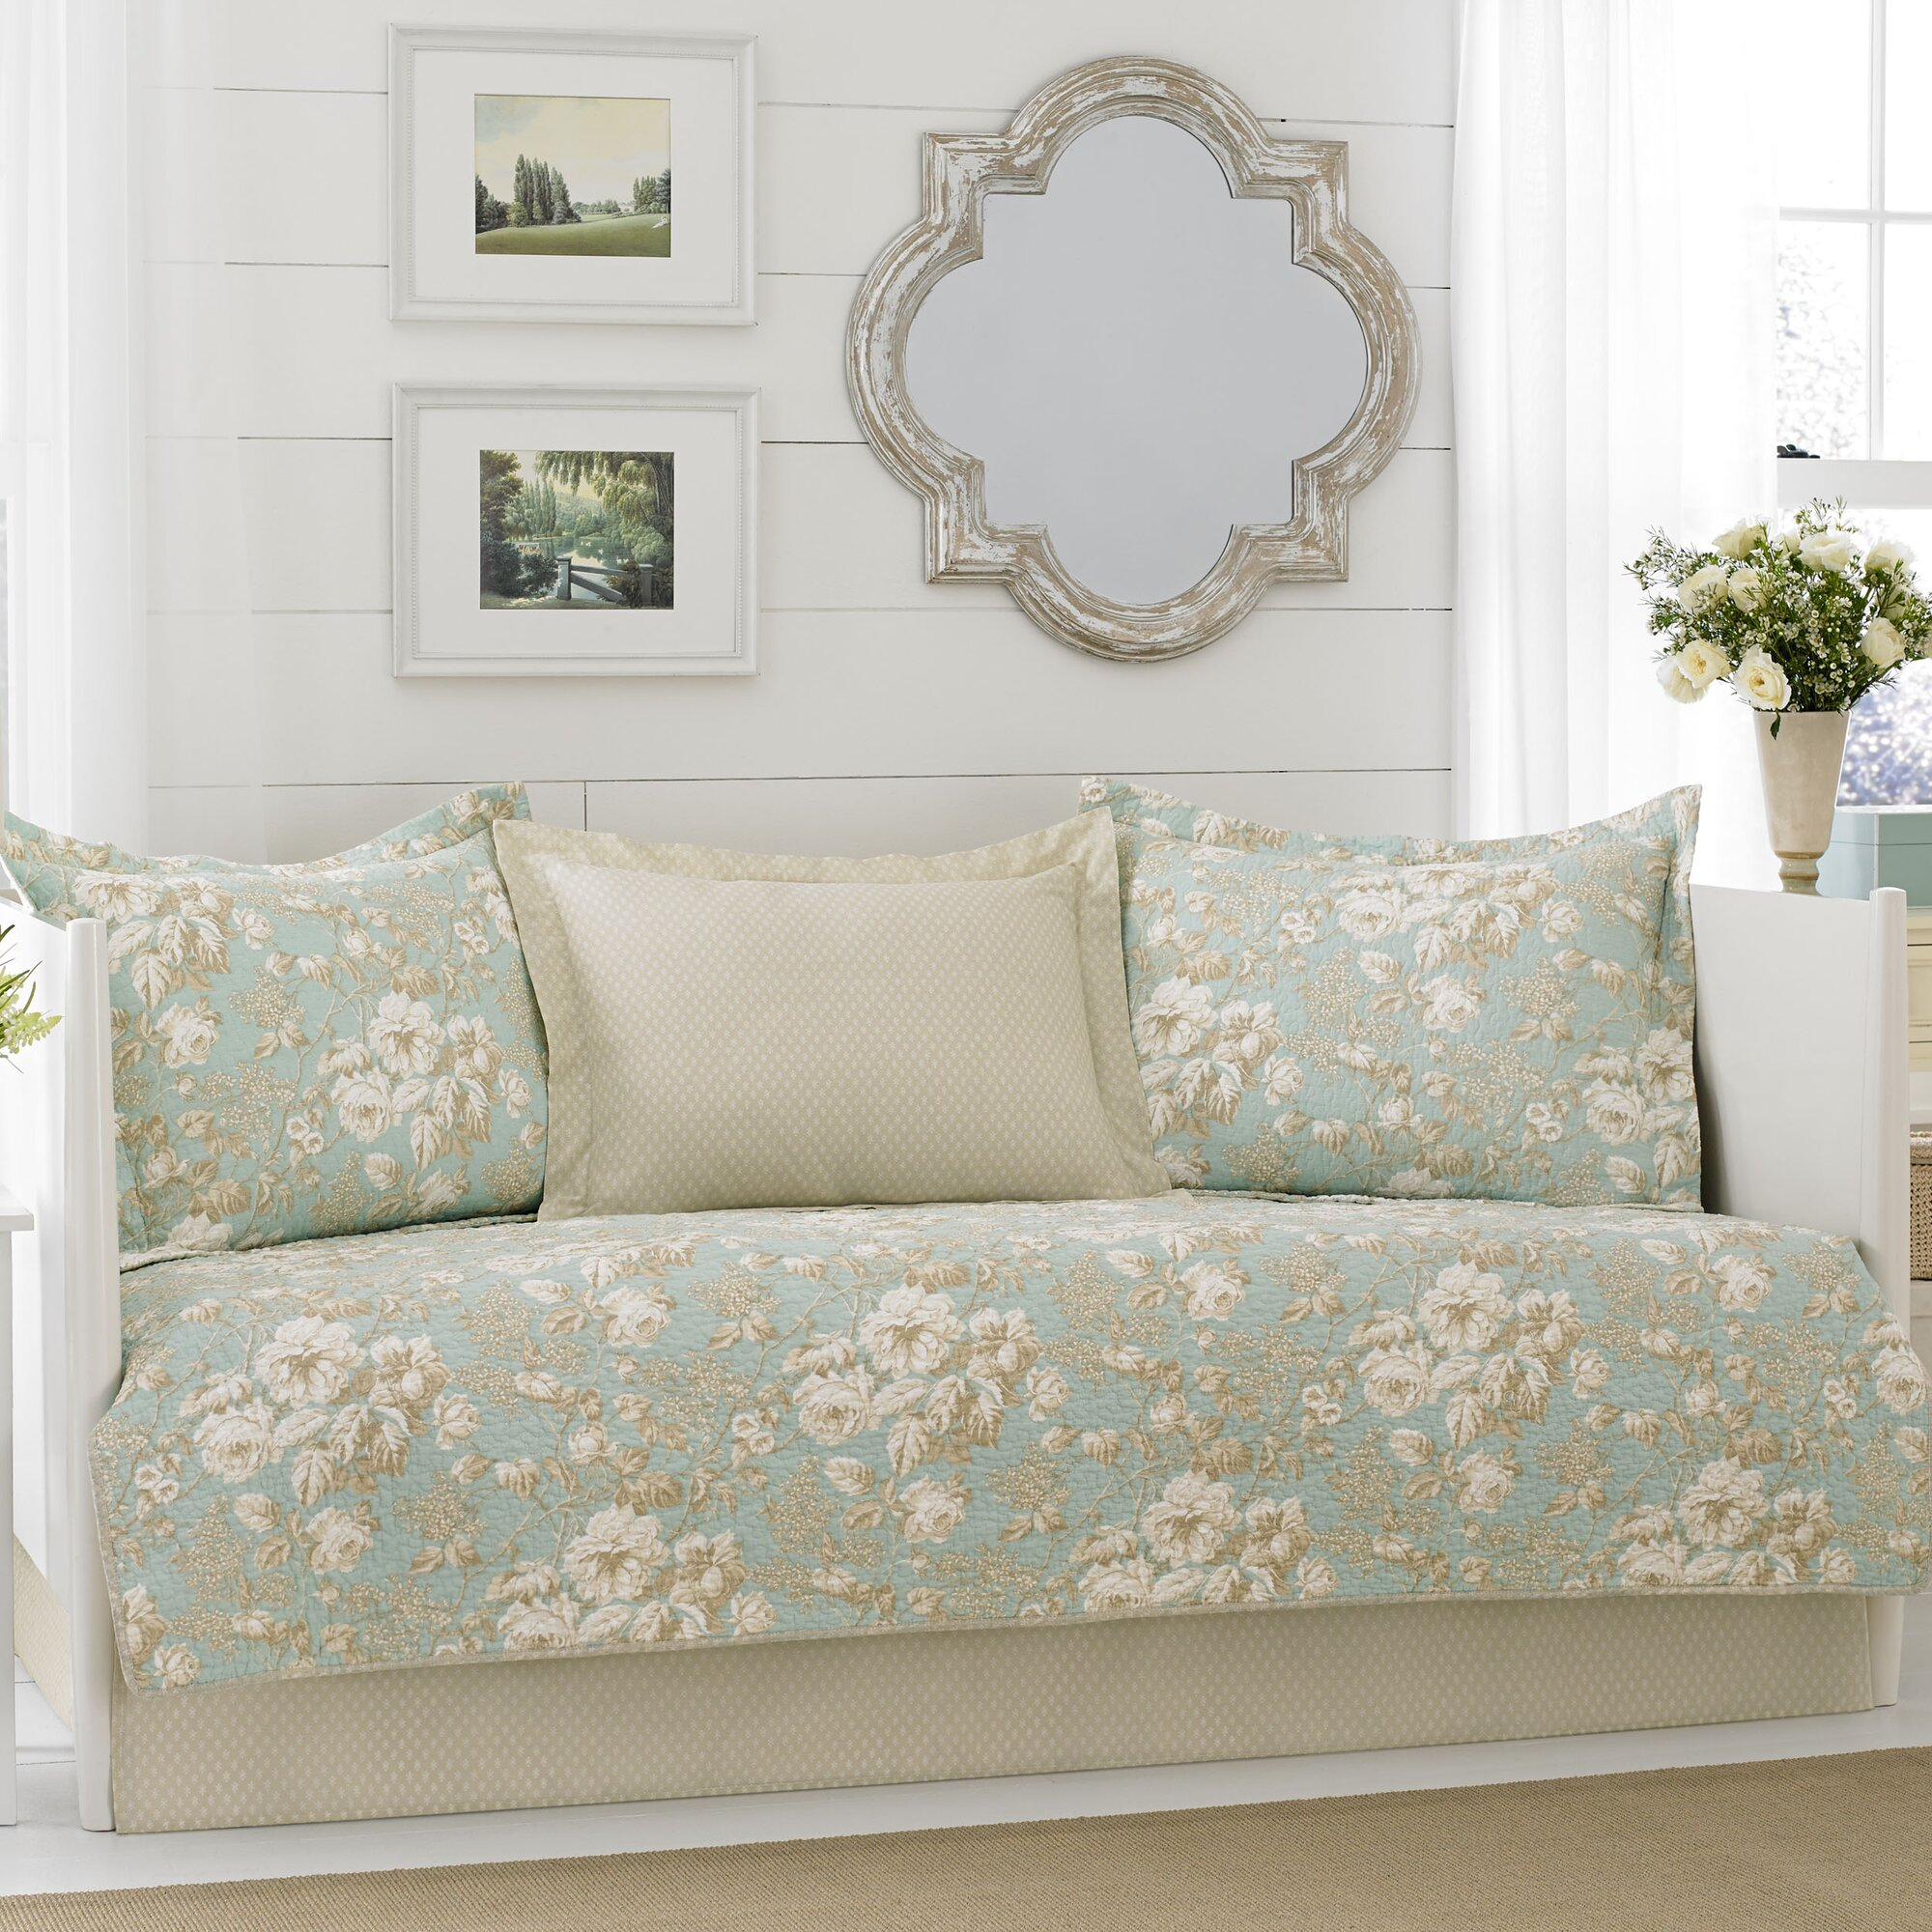 laura ashley home brompton 5 piece daybed set by laura ashley home reviews wayfair. Black Bedroom Furniture Sets. Home Design Ideas